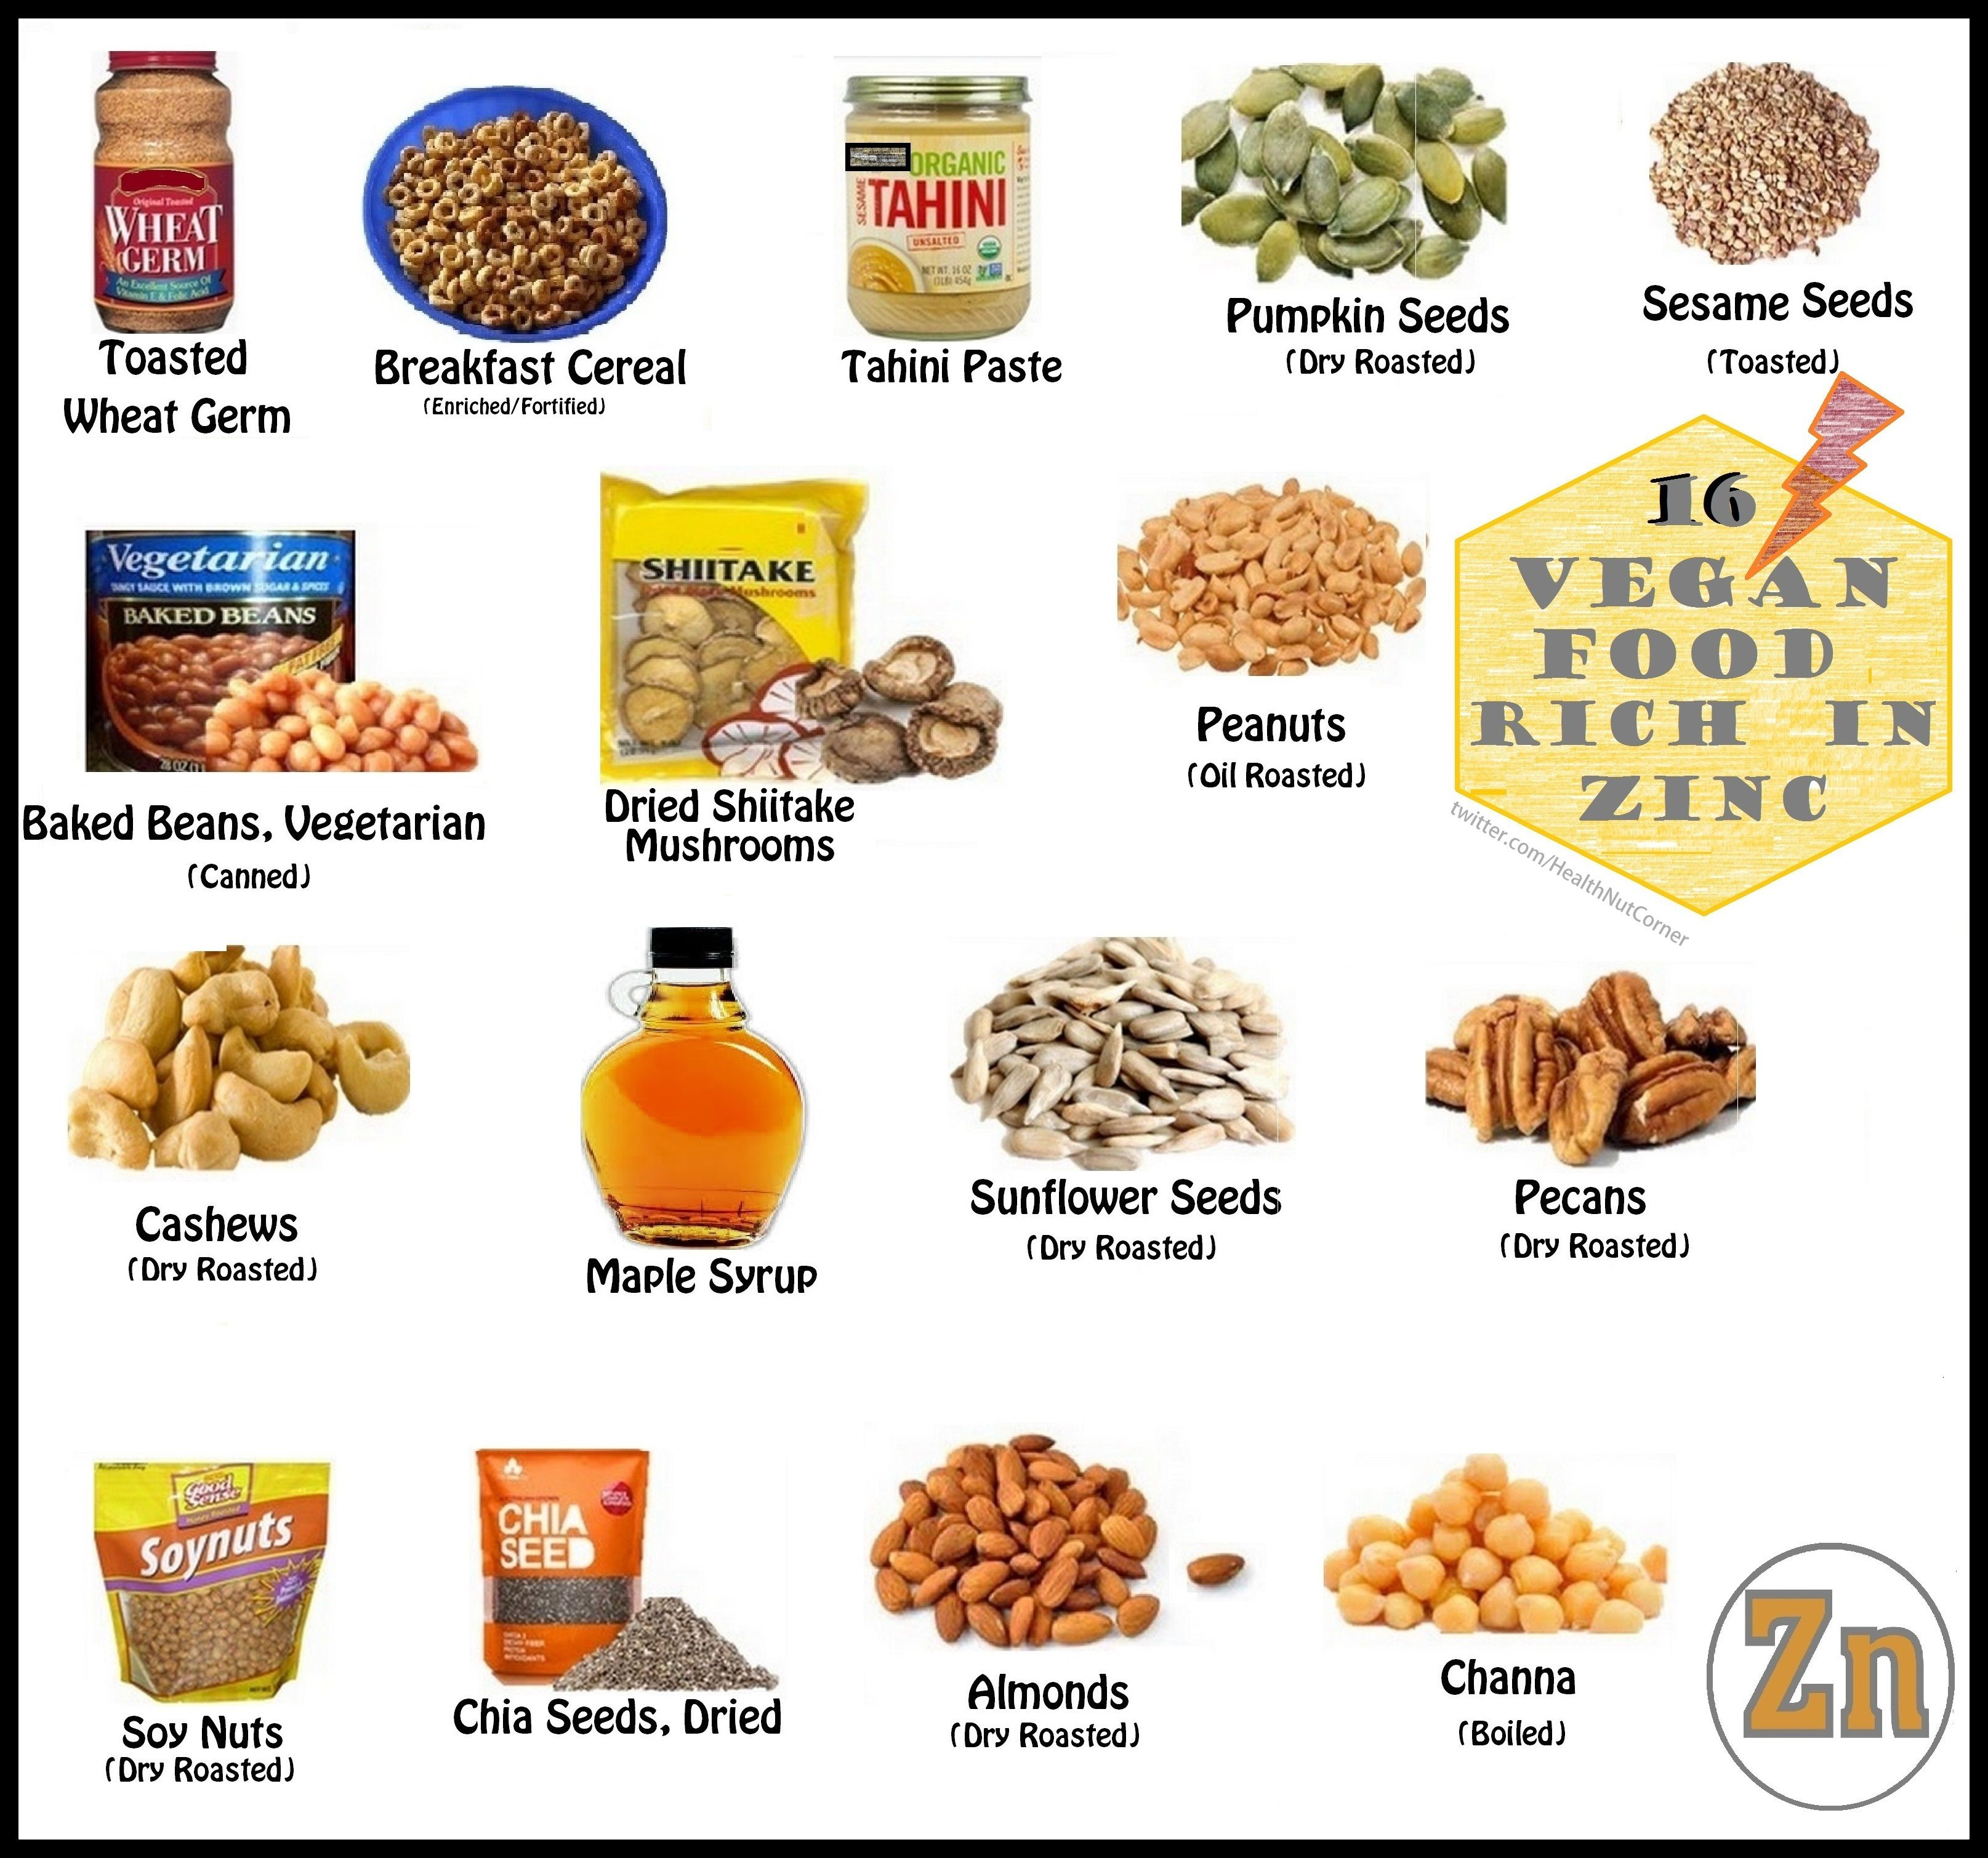 Zinc is a mineral needed by the body at the cellular level